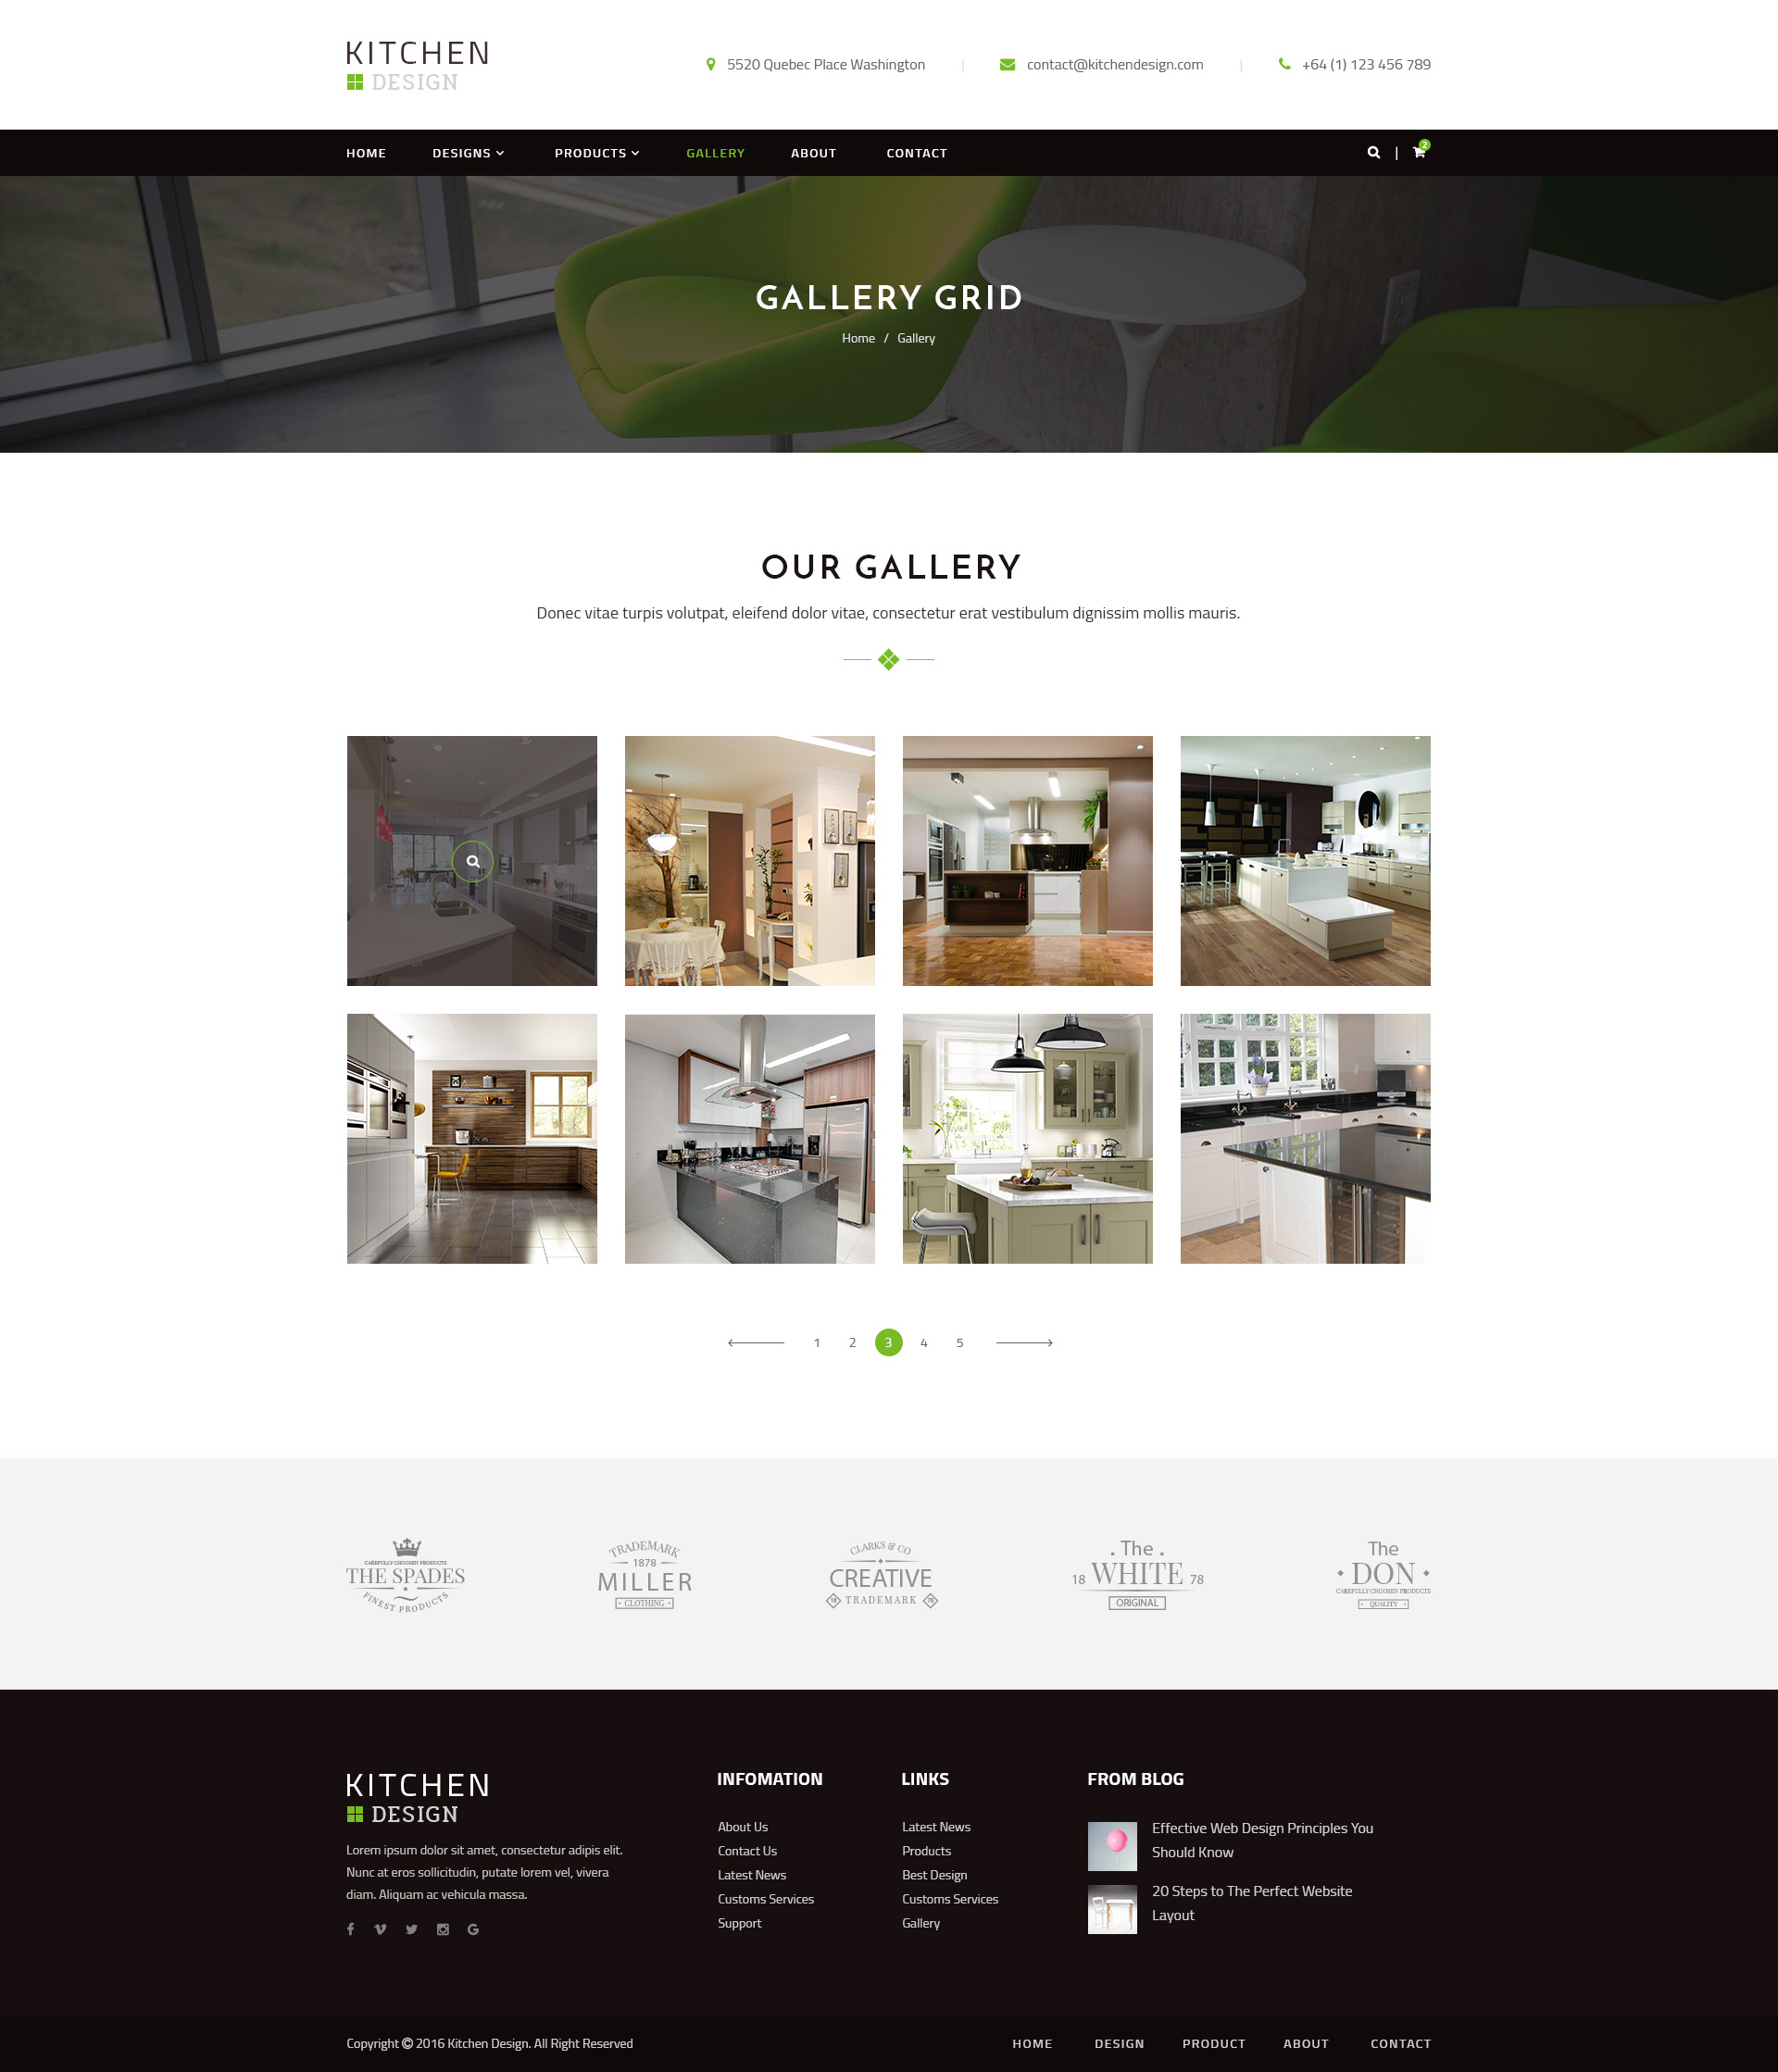 kitchen design grid template.  Kitchen Preview 16 GALLERY GRID jpg PSD Template by qtcmedia ThemeForest